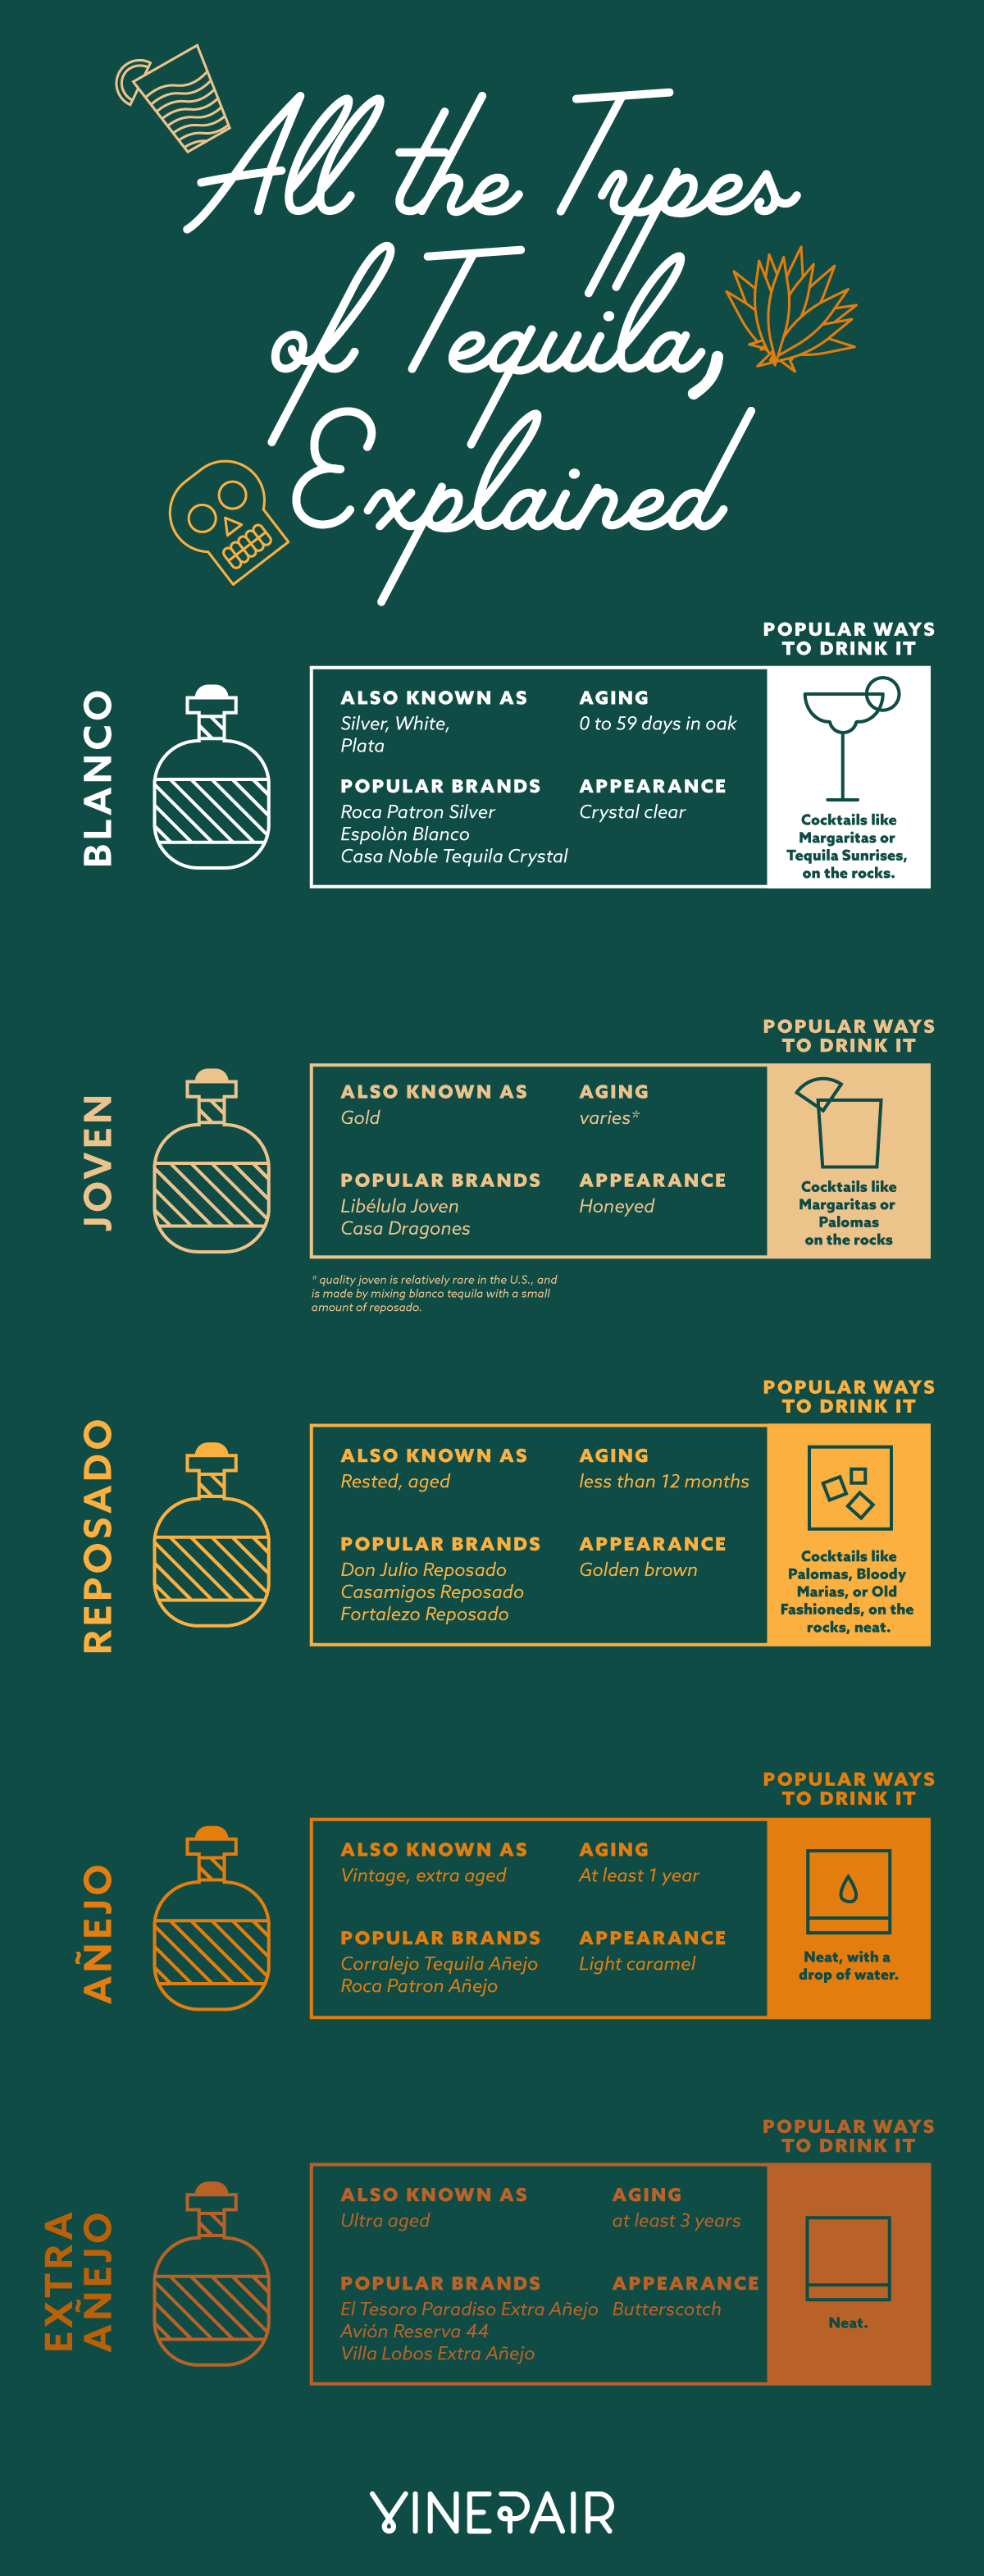 All the Types of Tequila, Explained (Infographic) #tequiladrinks